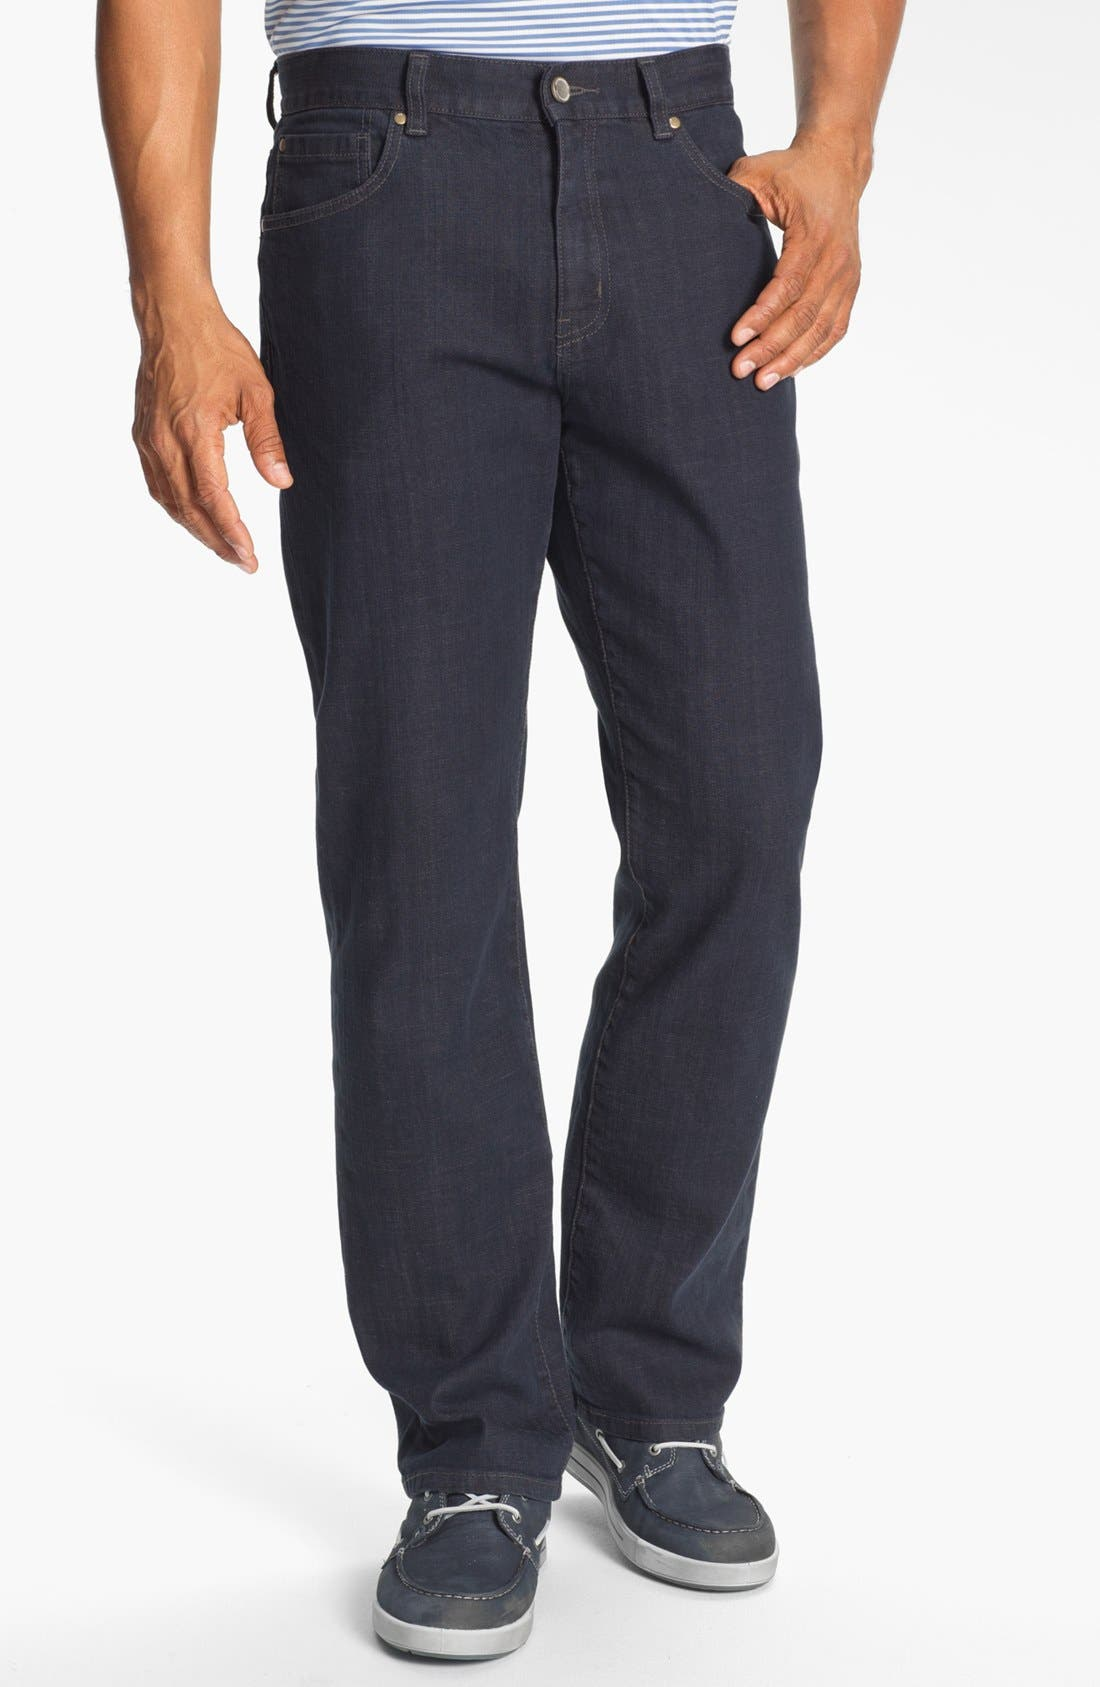 Alternate Image 1 Selected - Cutter & Buck 'Madison Park' Relaxed Fit Jeans (Carbon)